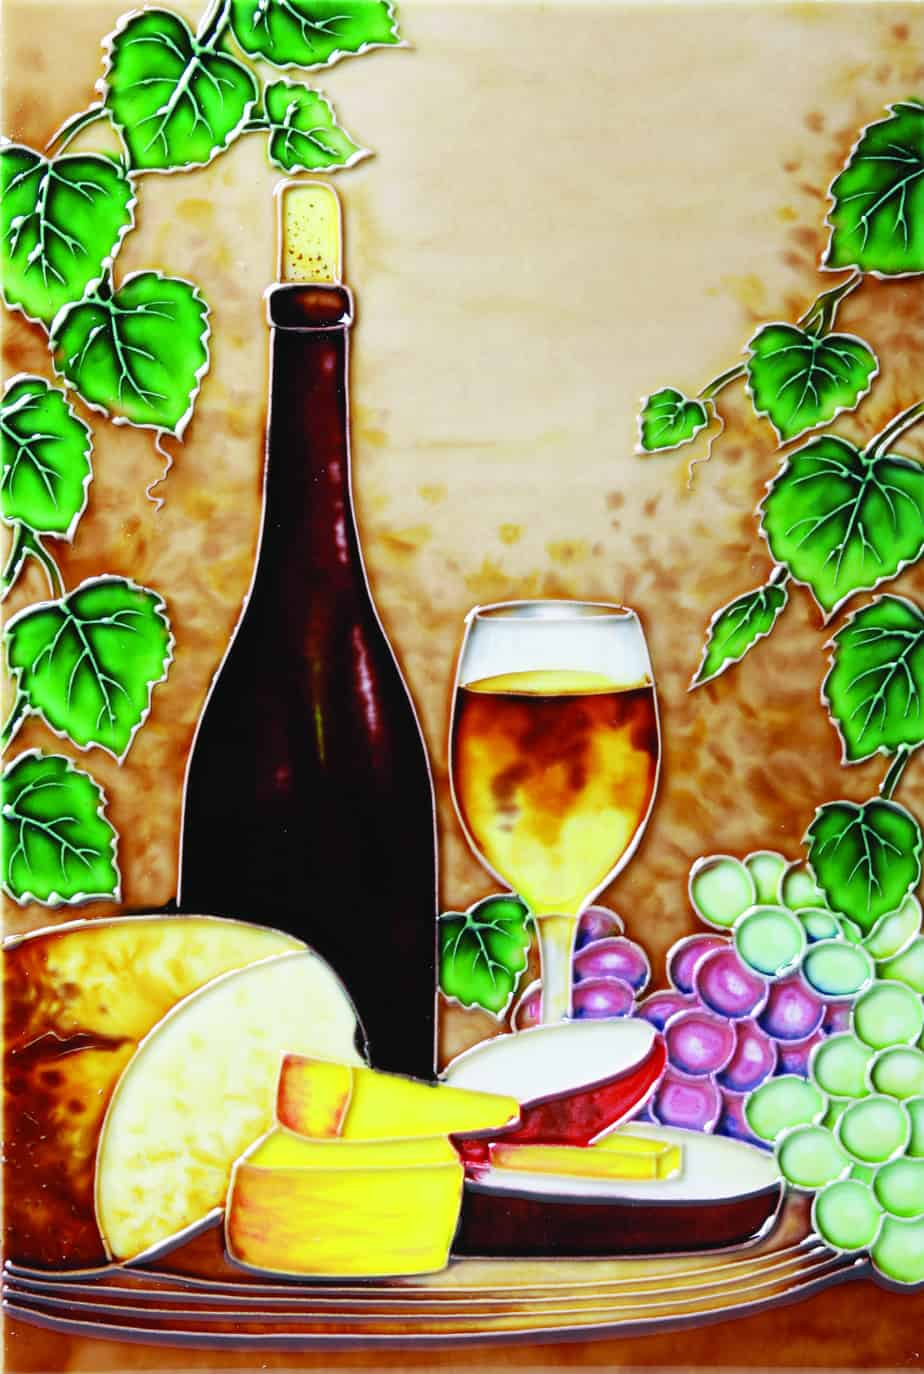 Wine & Cheese 1 8×12 (520332)